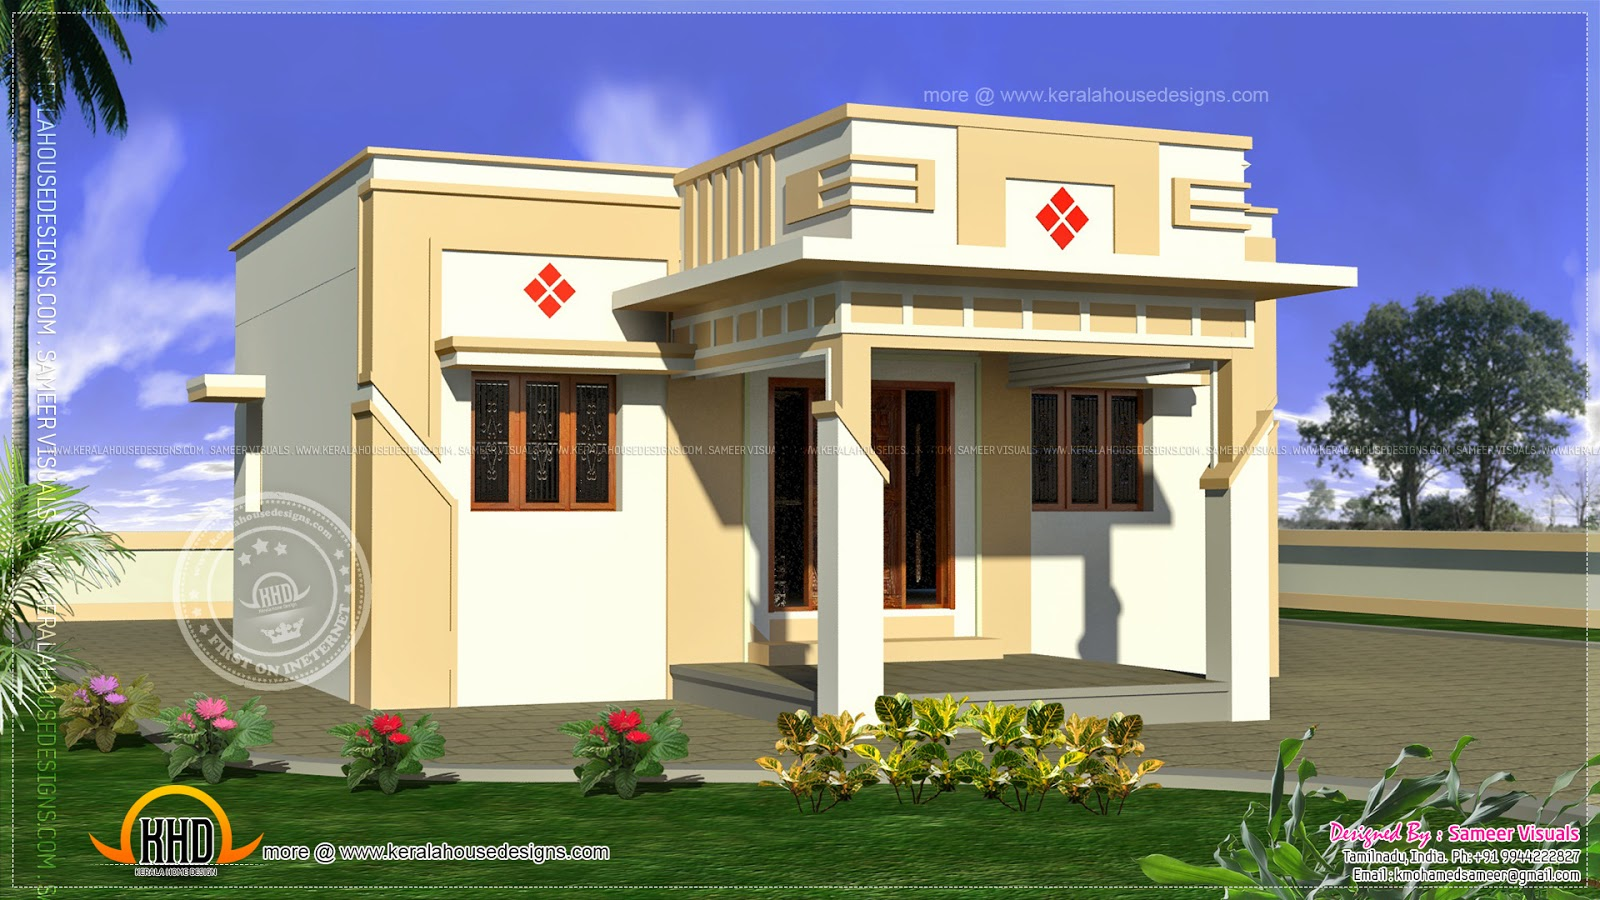 Home construction low cost home construction in kerala for House building costs